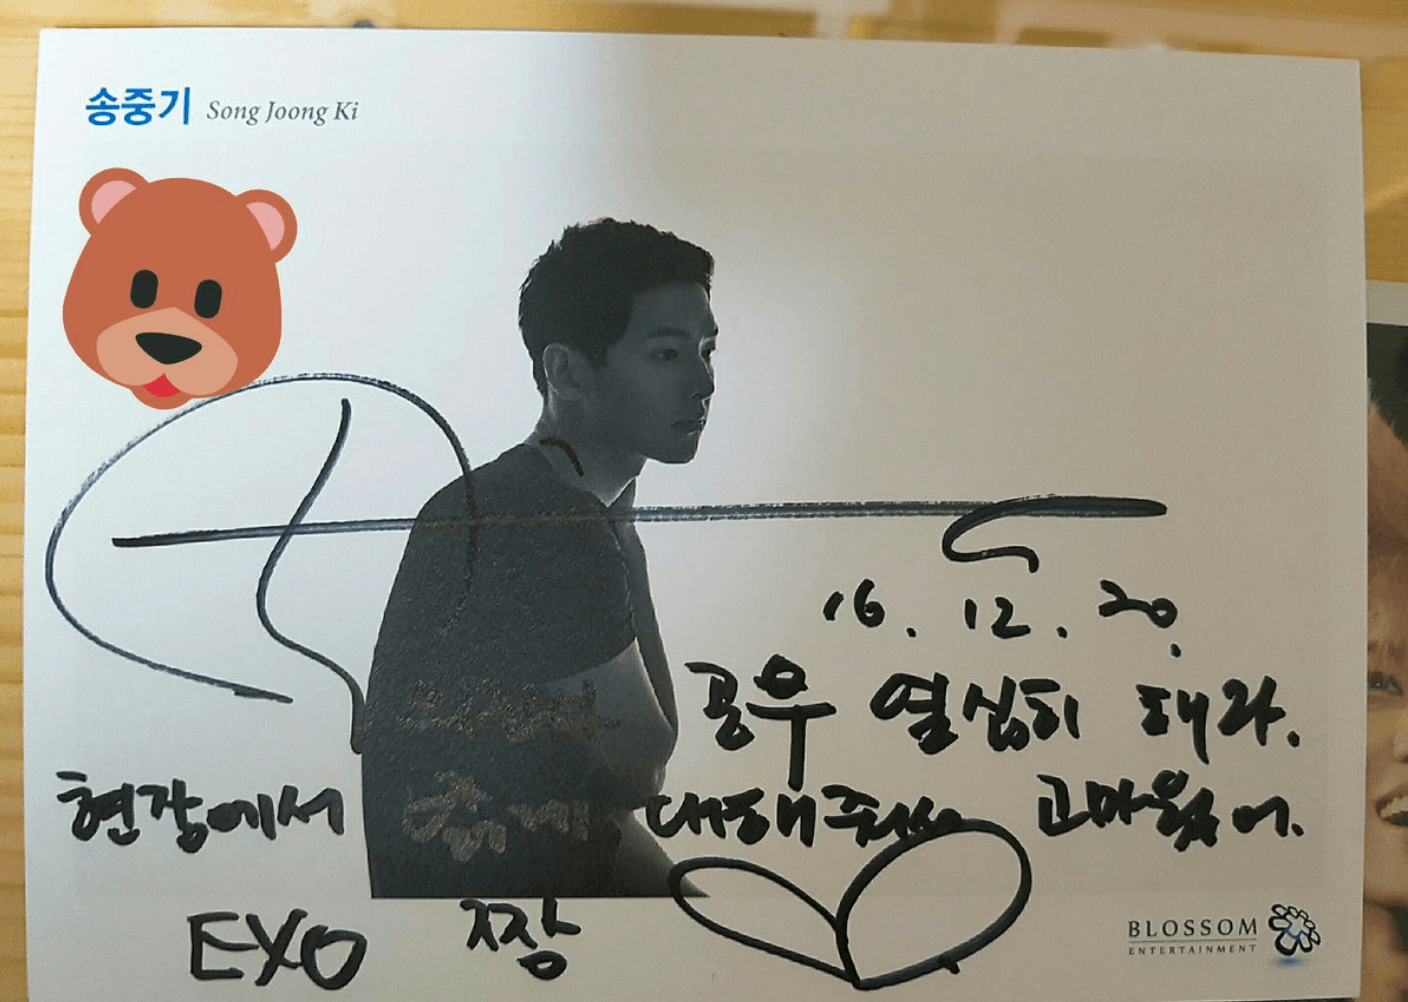 Actor Song Joong Ki signed on a staff member's card that he was a fan of EXO too.